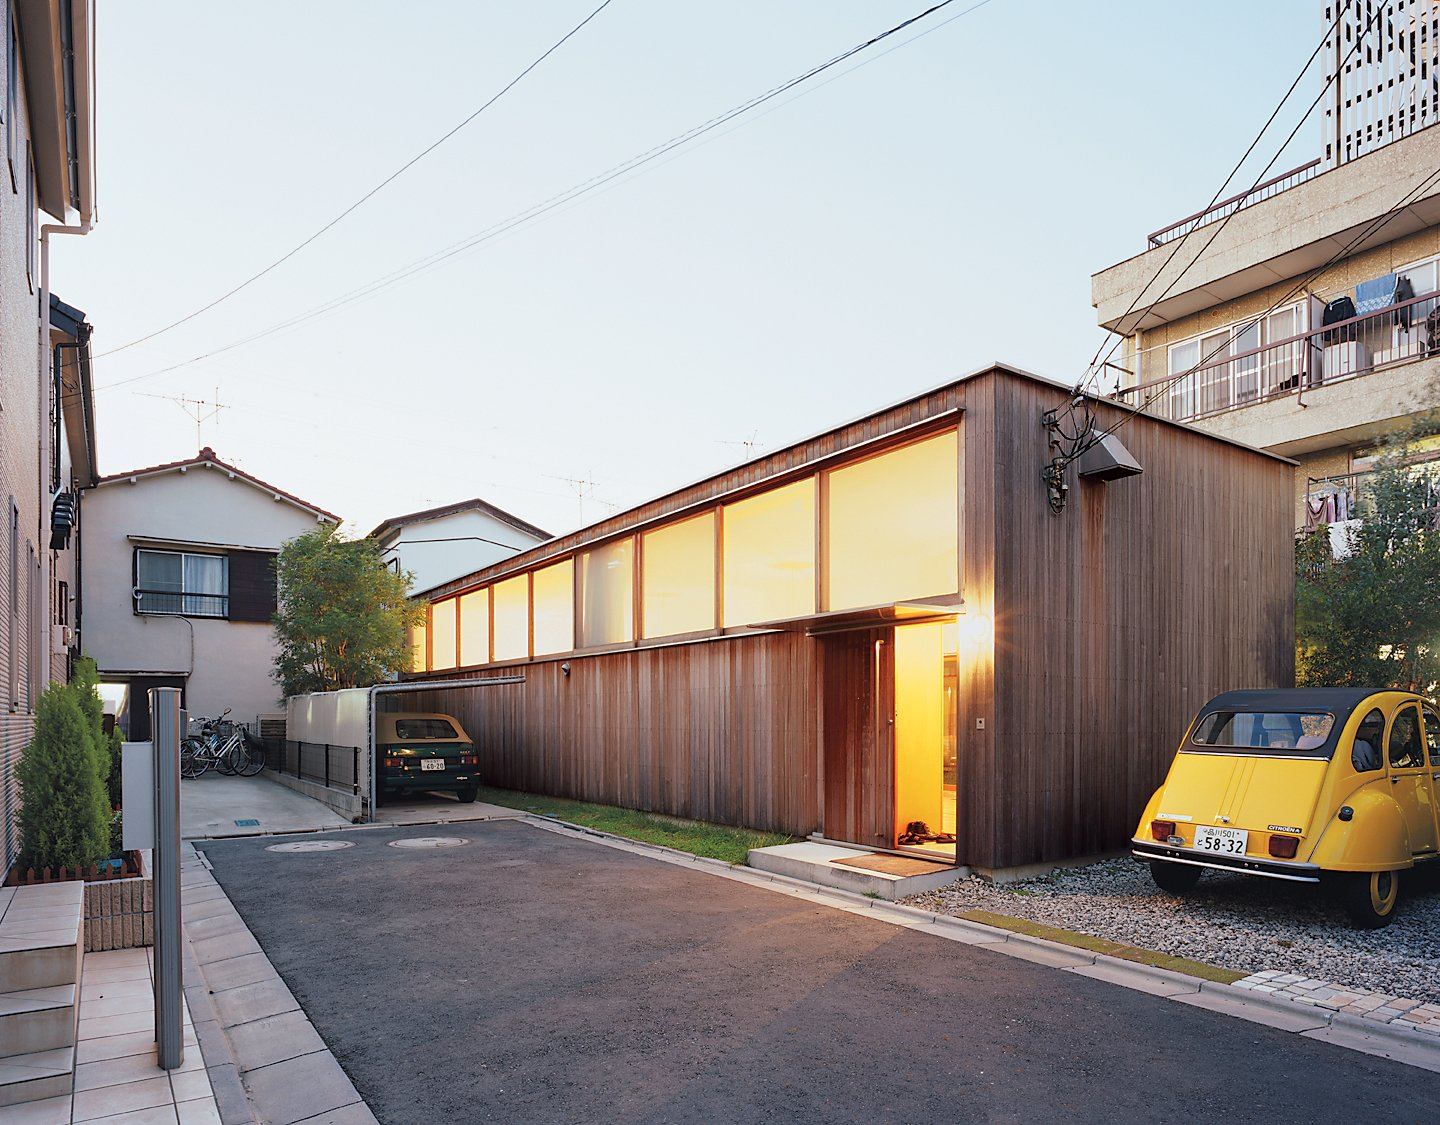 Large clerestory windows face the street at the Higashibatas' house in Tokyo, optimizing both privacy and natural light within.  Best by DAVE MORIN from Unique Tokyo-Based Architects